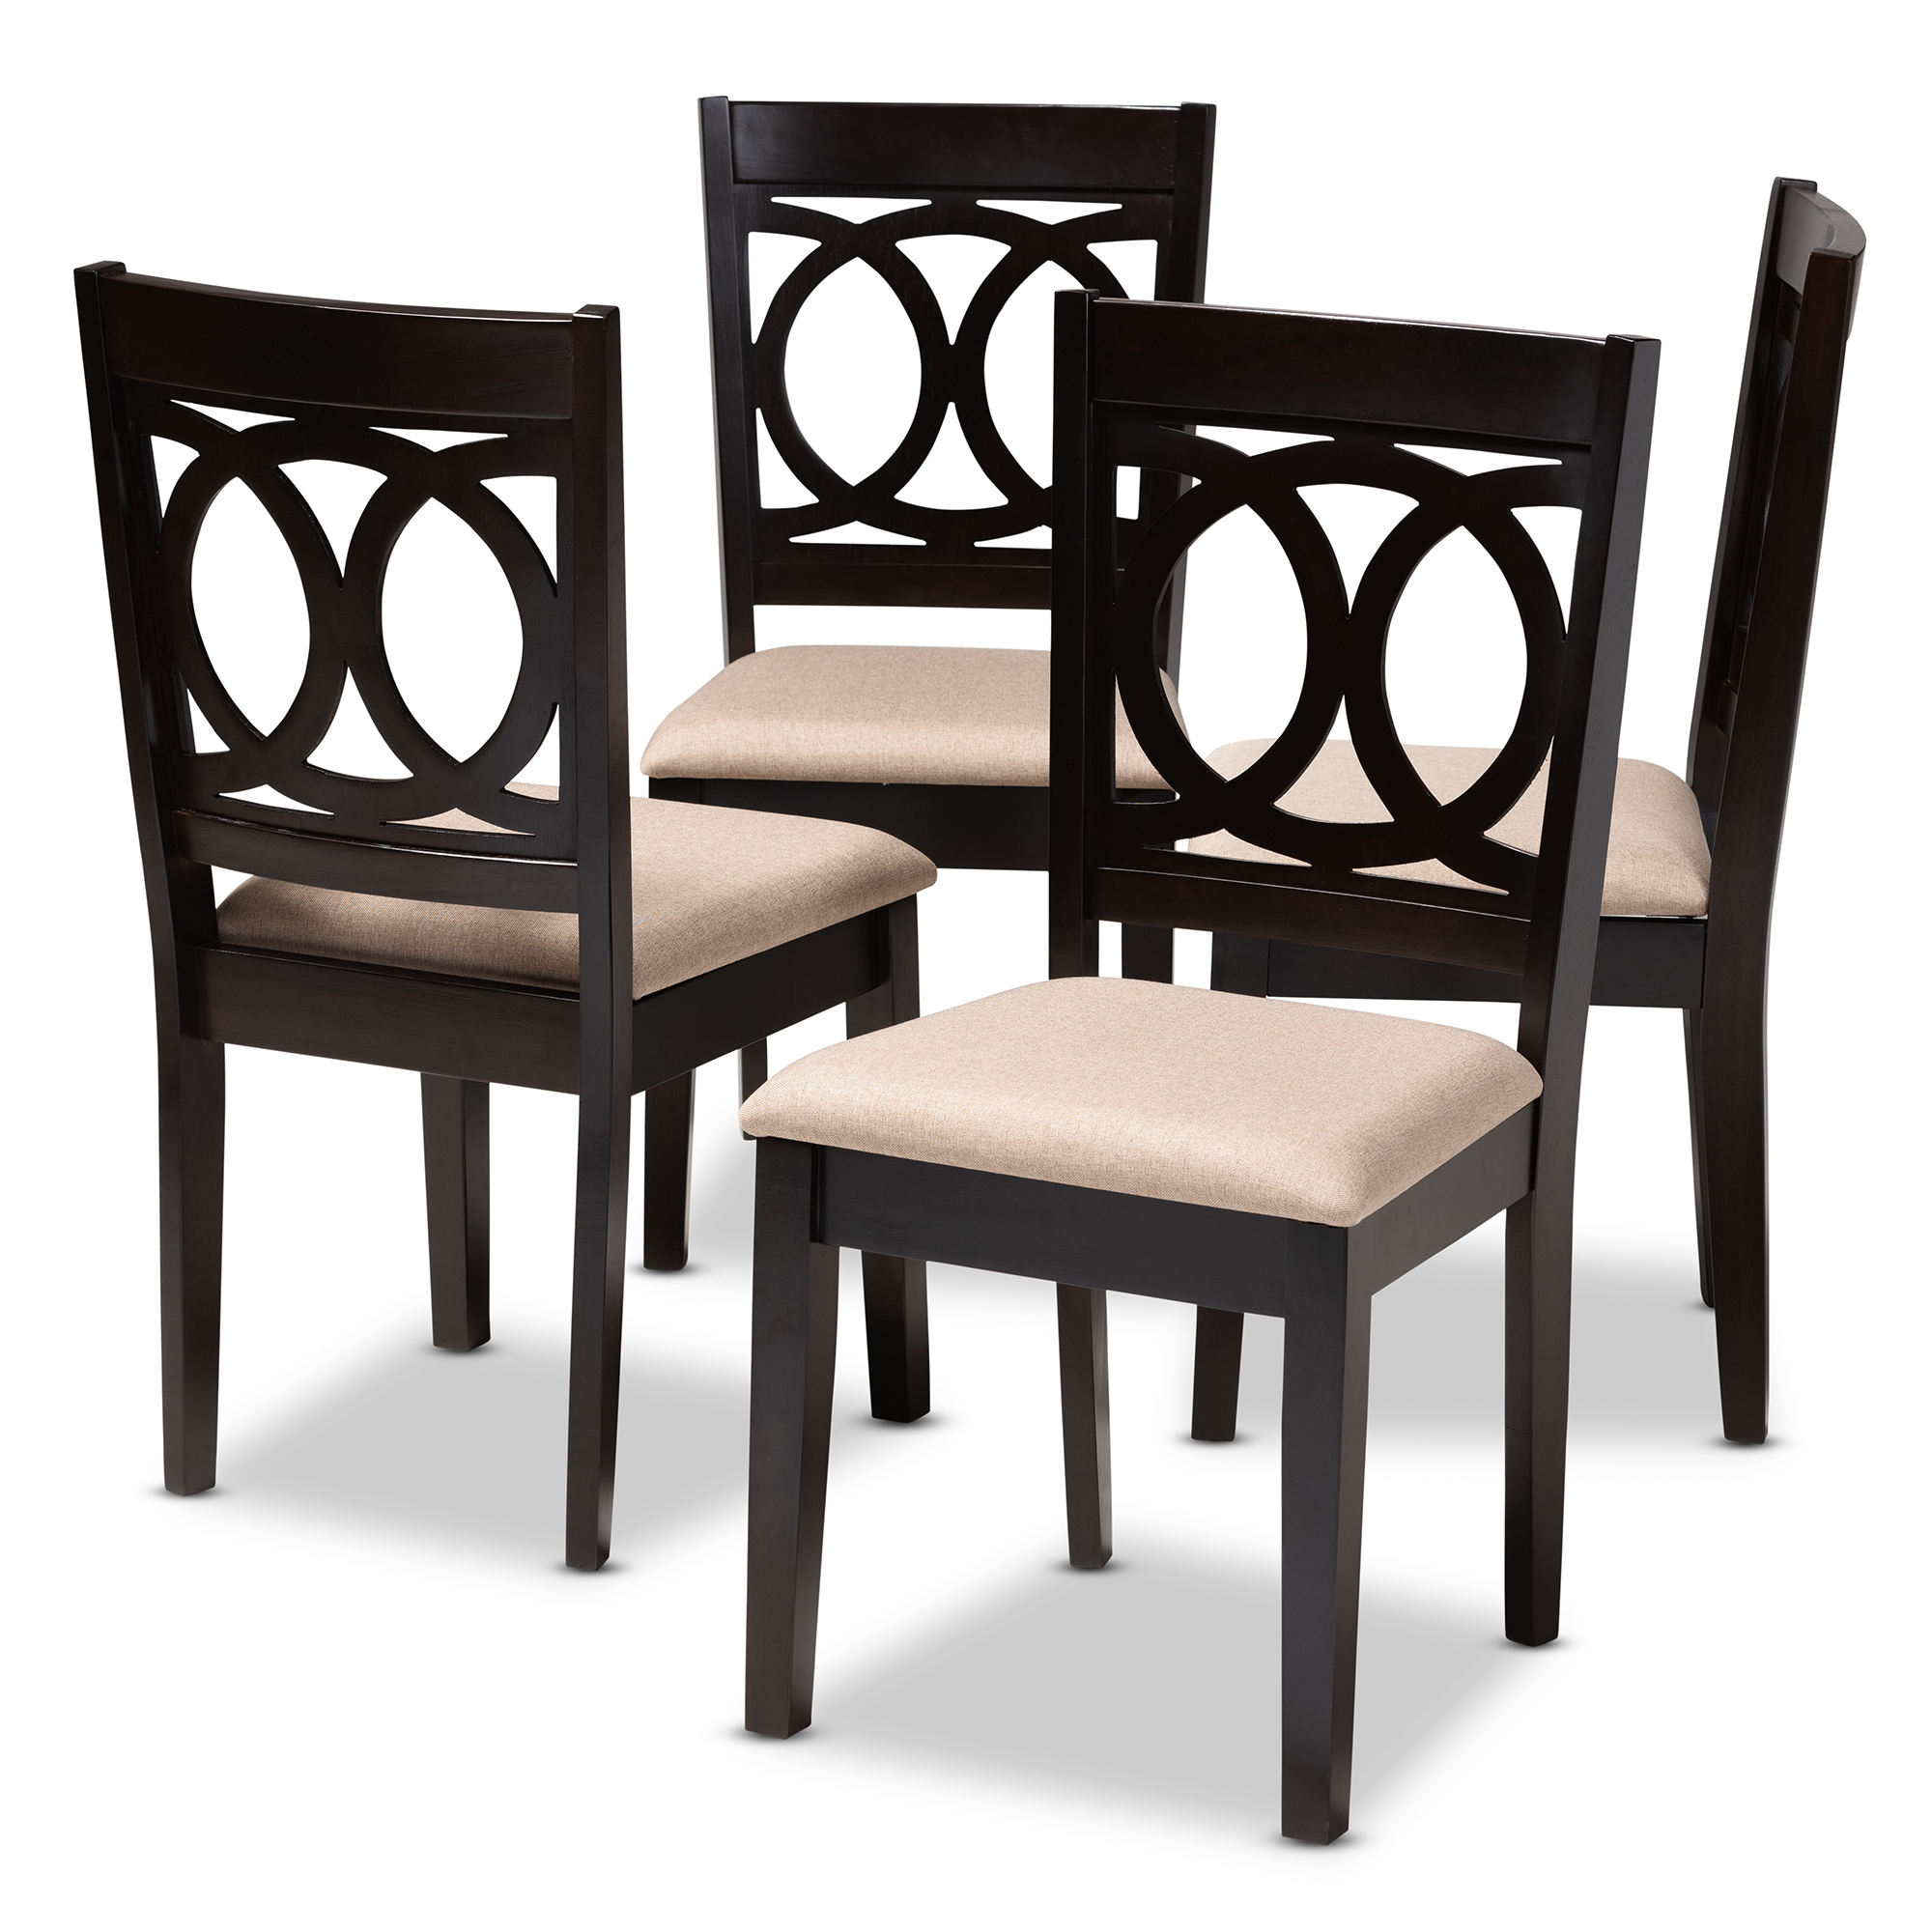 Baxton Studio Lenoir Modern And Contemporary Sand Fabric Upholstered Espresso Brown Finished Wood Dining Chair Set